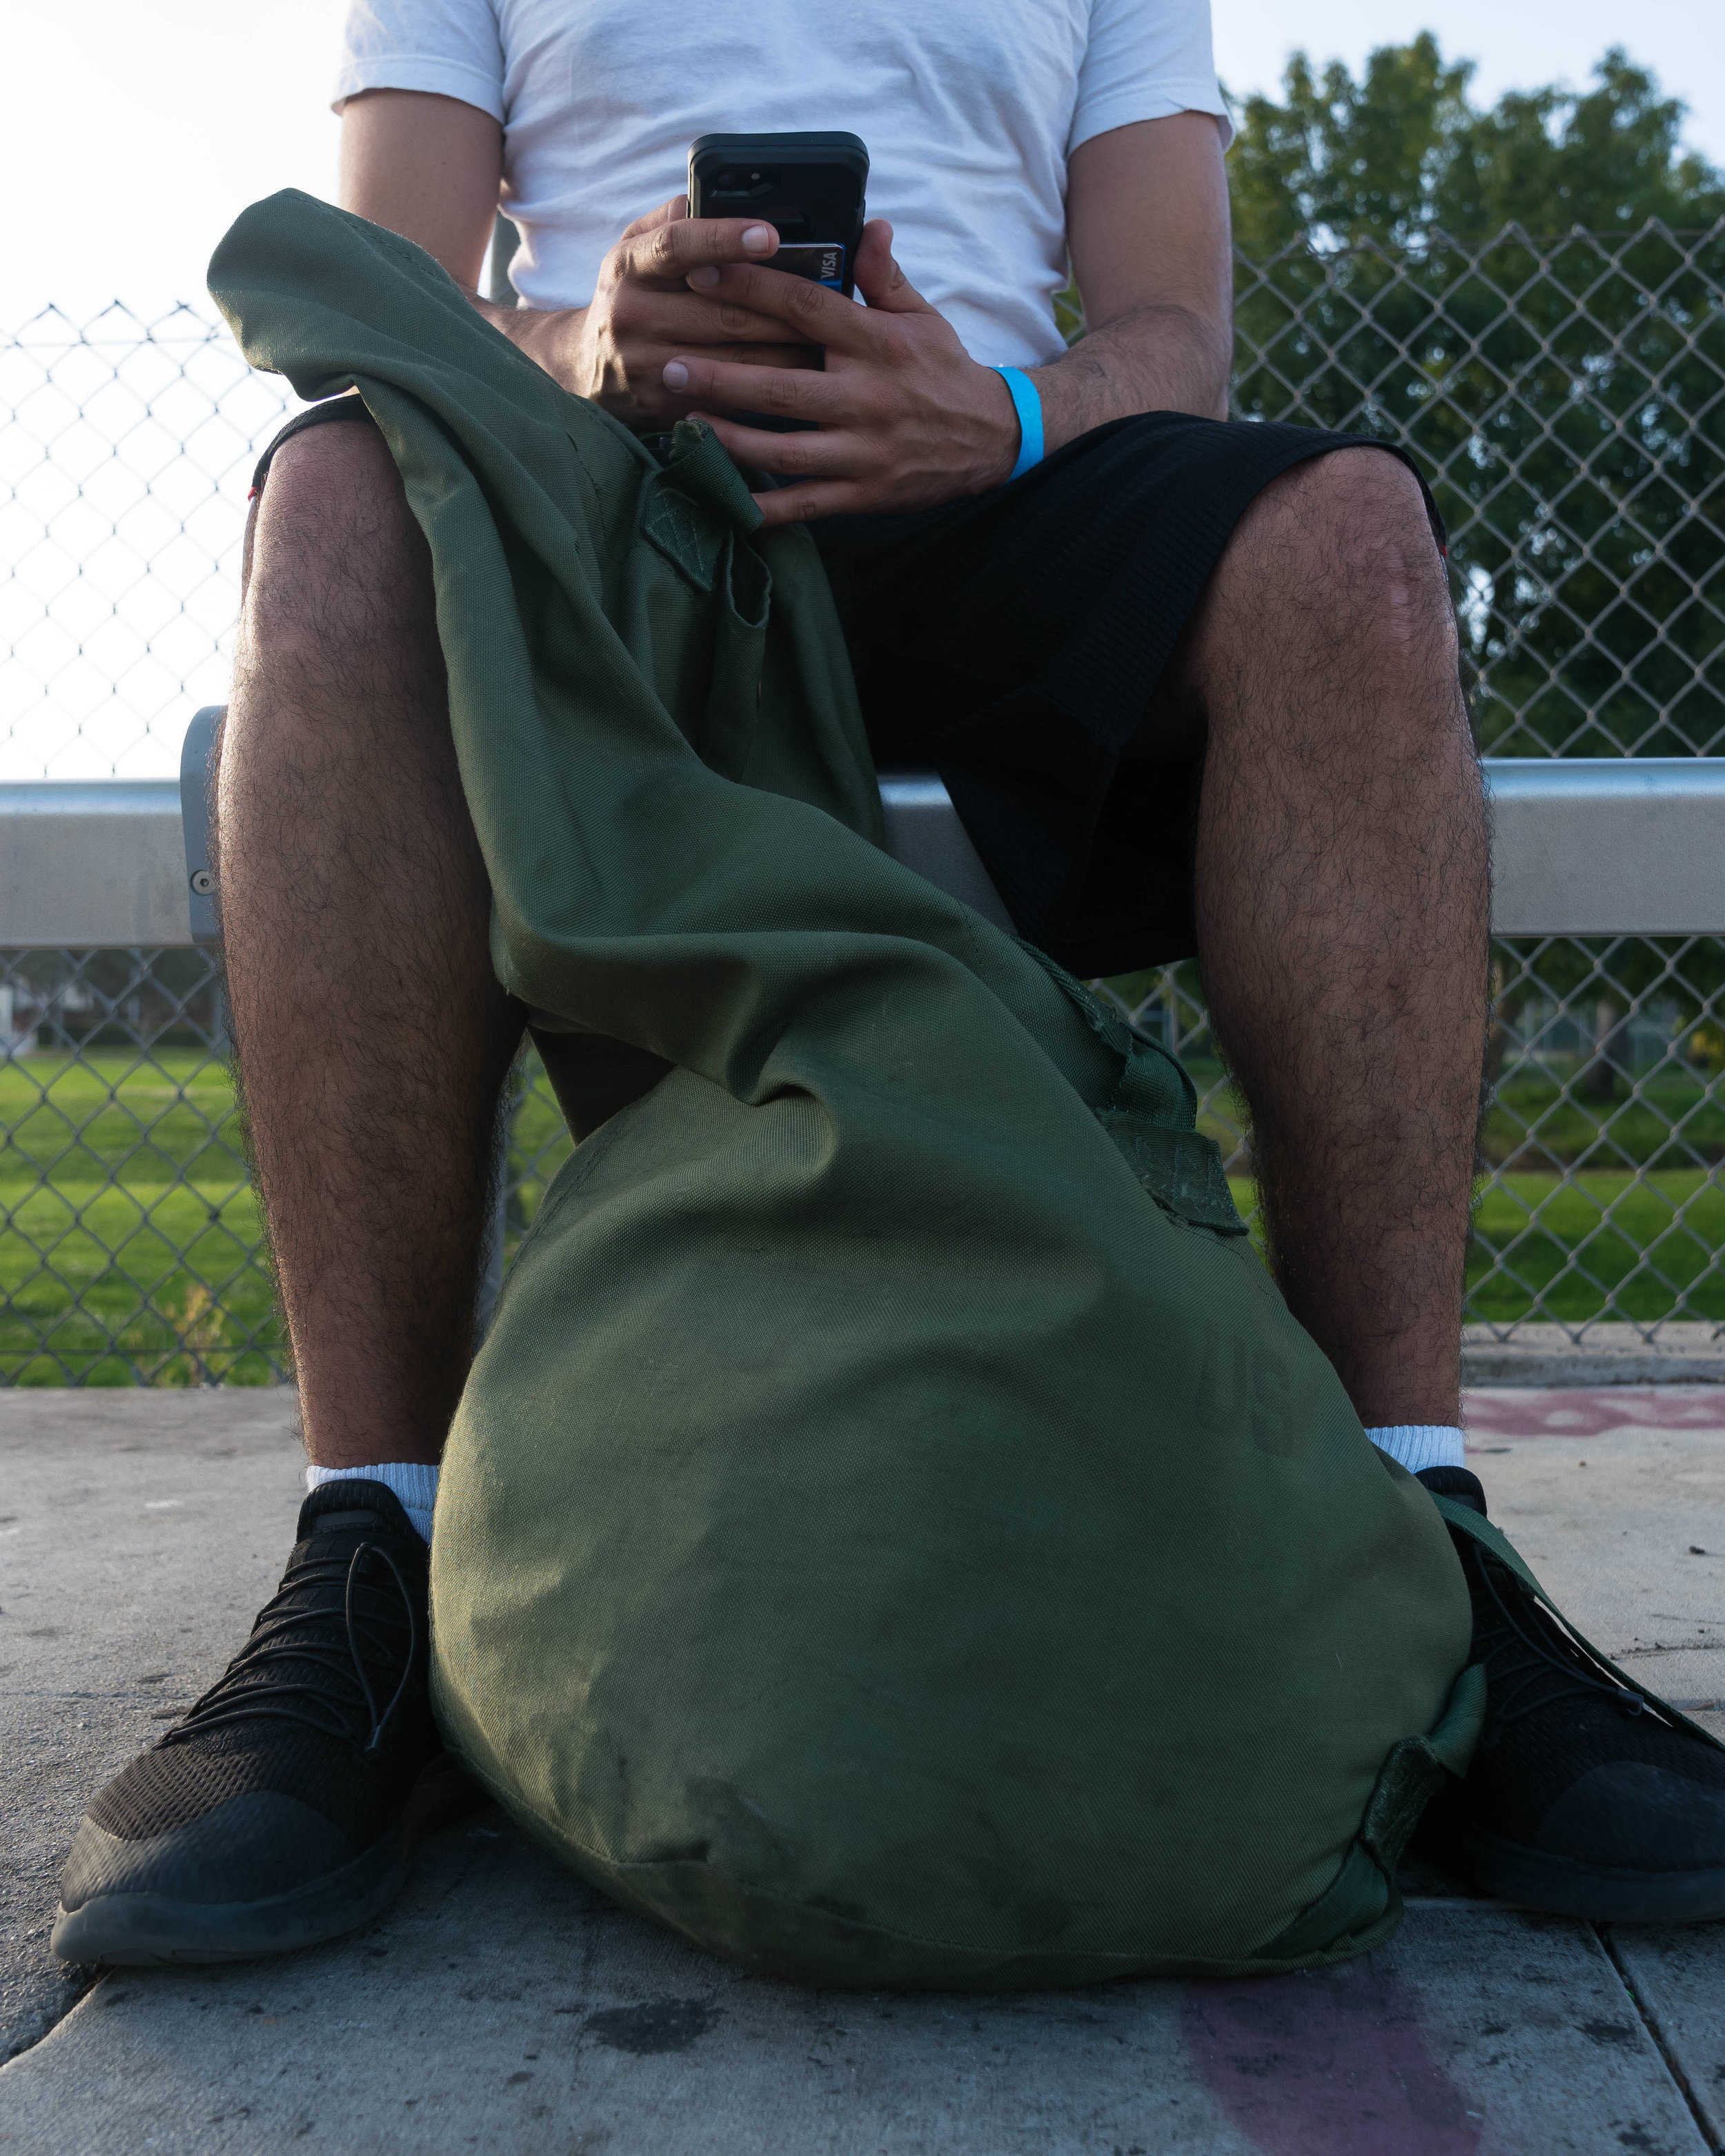 Santa Monica College student, Francisco Munoz, a veteran who experienced homelessness as an SMC student sits with his sea bag stuffed with a backpack, books, a jacket, and towel, at a bus stop in Los Angeles, California on June 3, 2018. Munoz, who cannot afford a car, says he takes the bus everywhere. (Helena Sung/Corsair Photo)